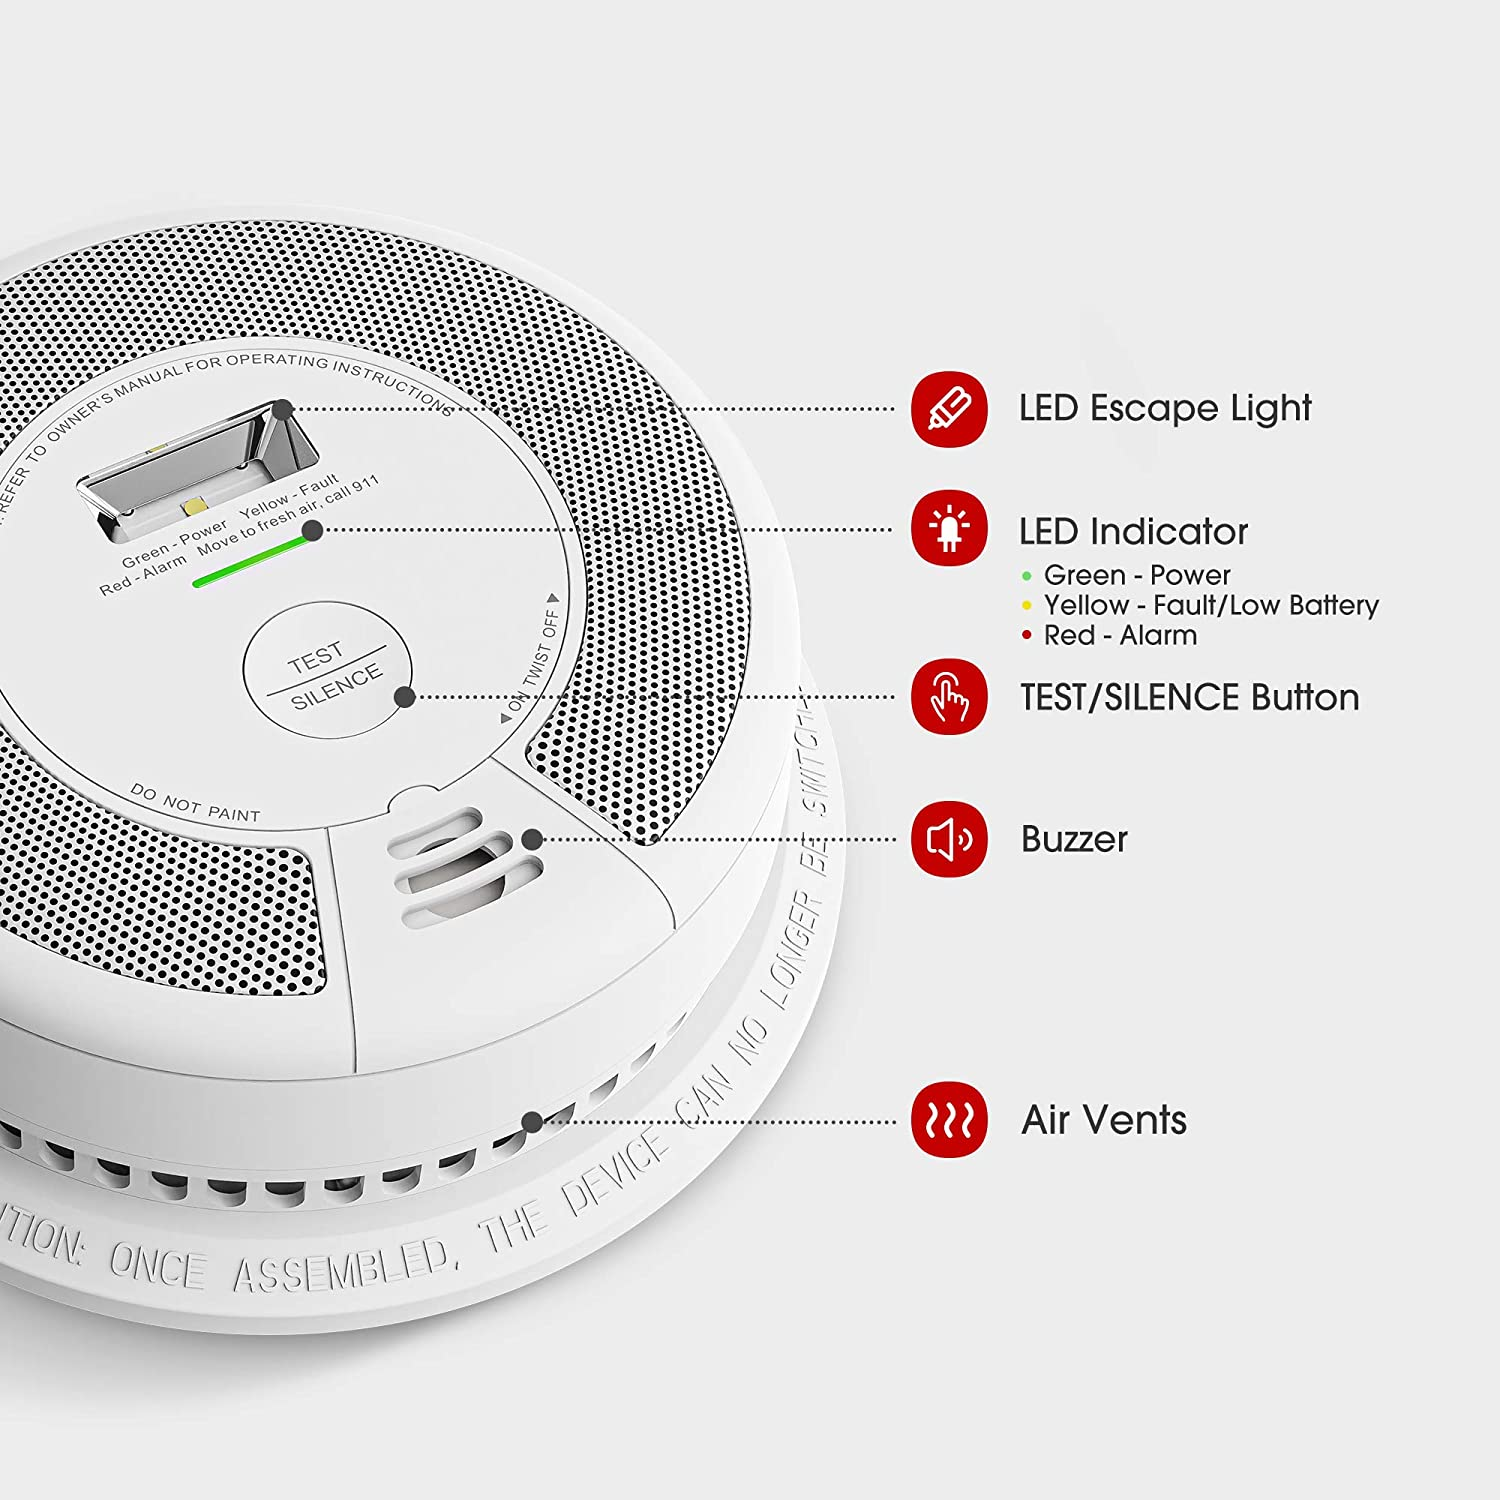 Fire Smoke Alarm 10-Year Battery Not Hardwired X-Sense Smoke Detector with Escape Light Compliant with UL 217 Standard SD07